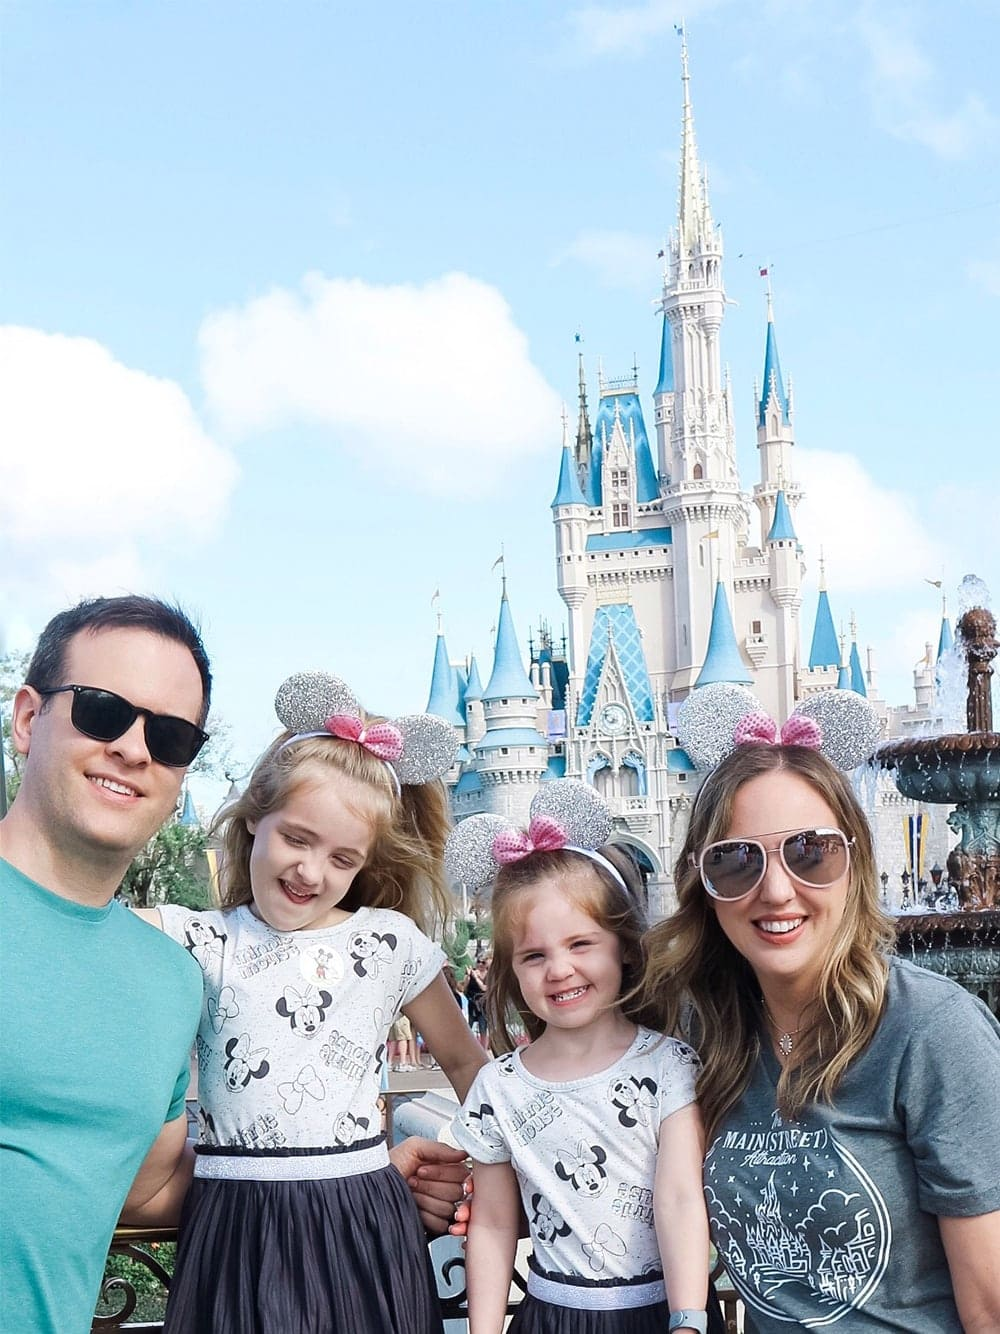 Houston blogger Meg O. on the Go shares what to wear to Disney World